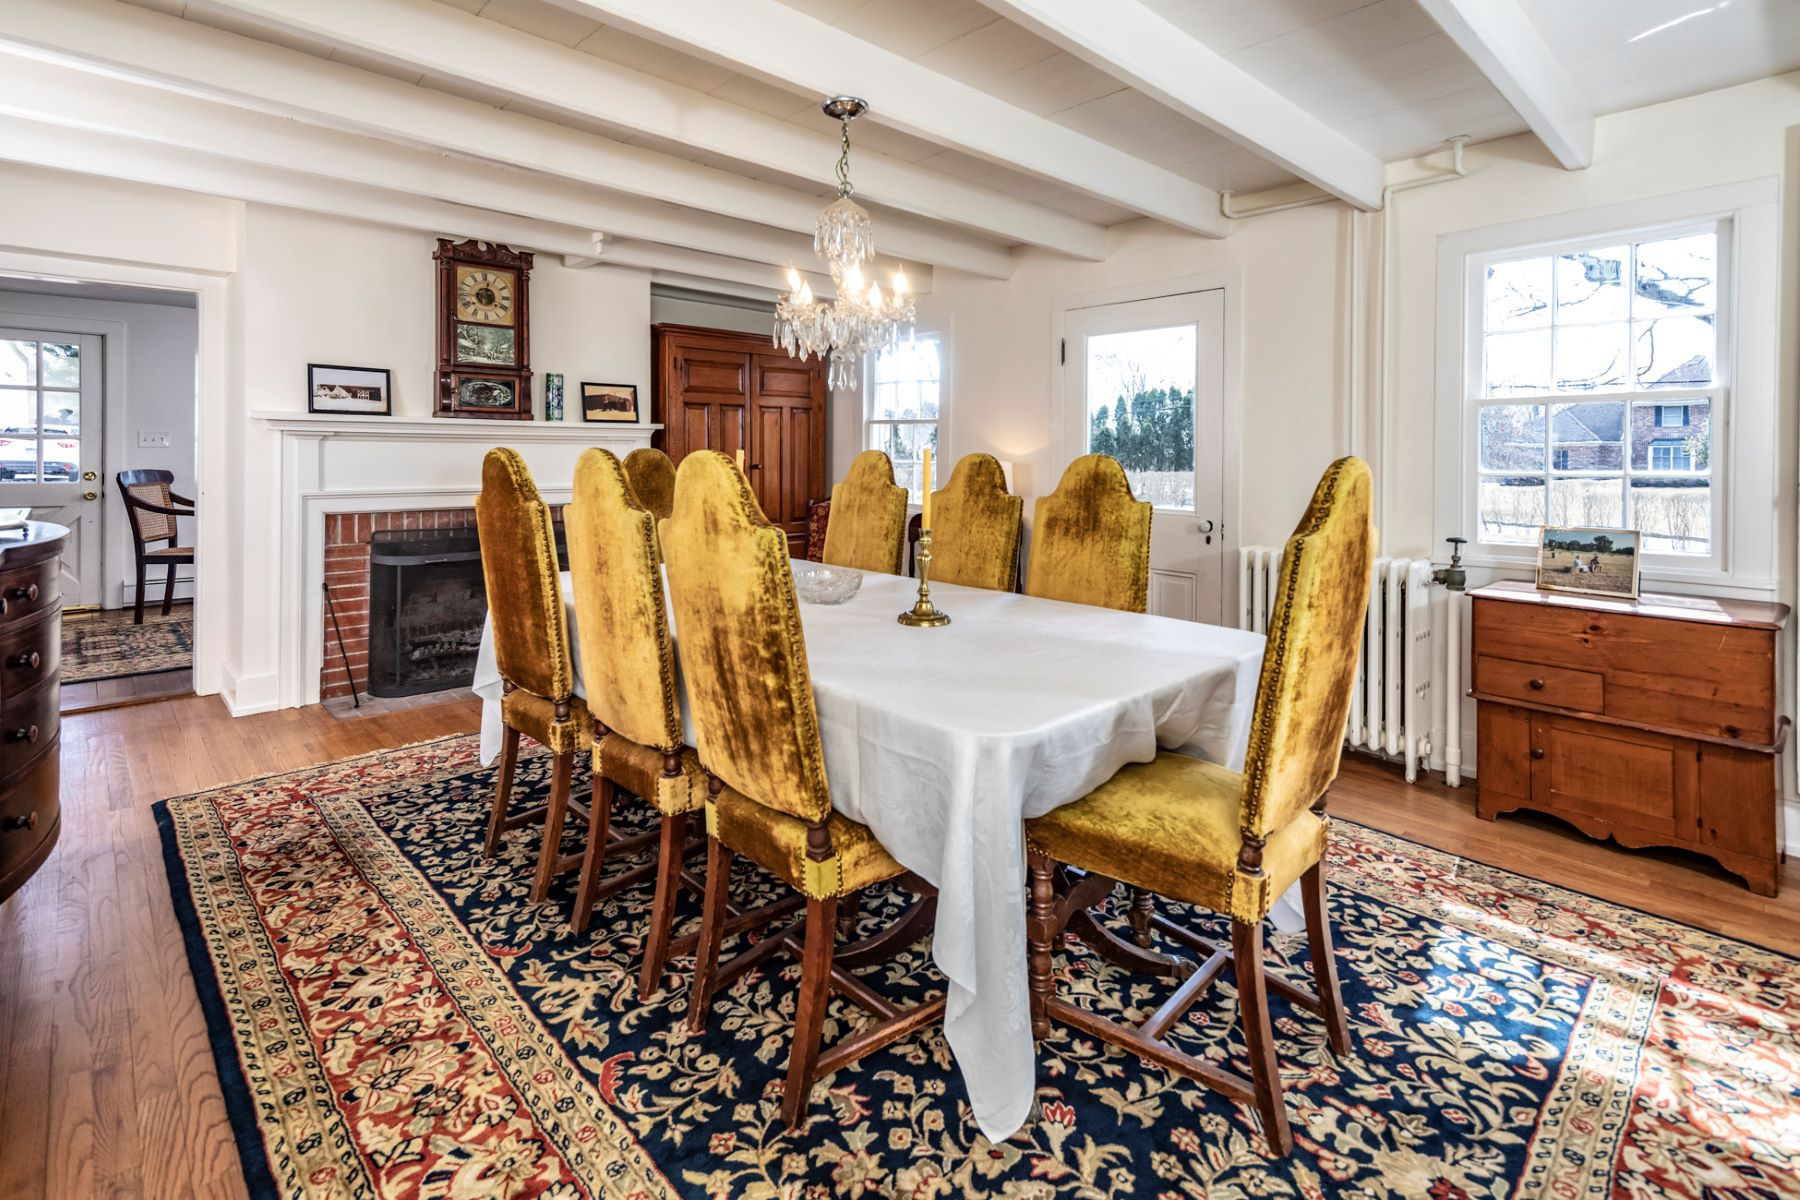 Additional photo for property listing at Hedgecroft: Available For The First Time Since 1968 313 Pennington Titusville Road, Pennington, Nueva Jersey 08534 Estados Unidos